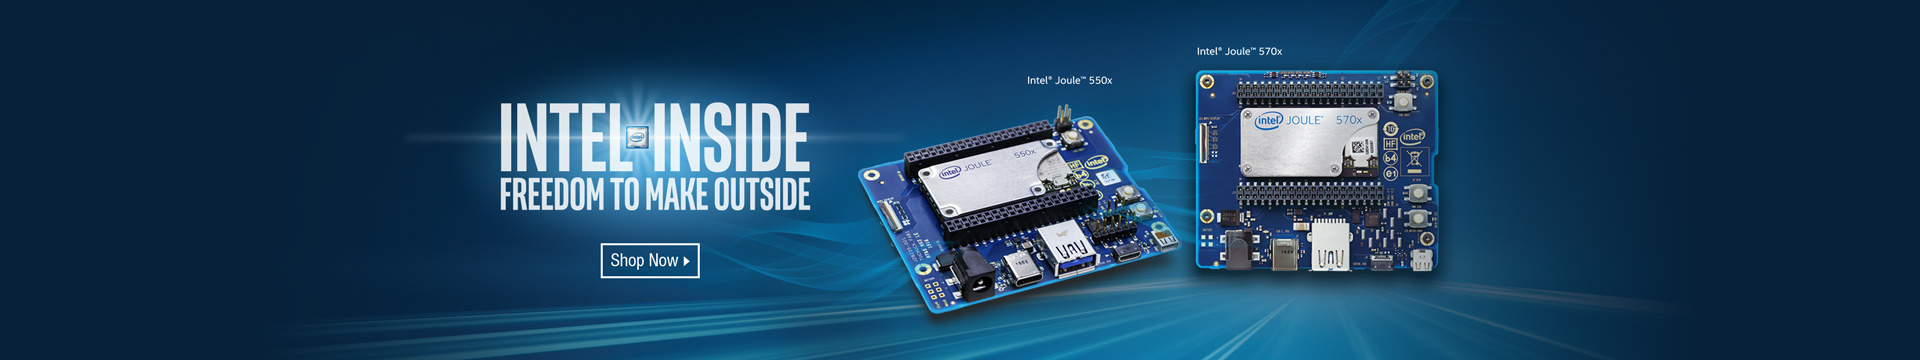 Intel inside: freedom to make outside